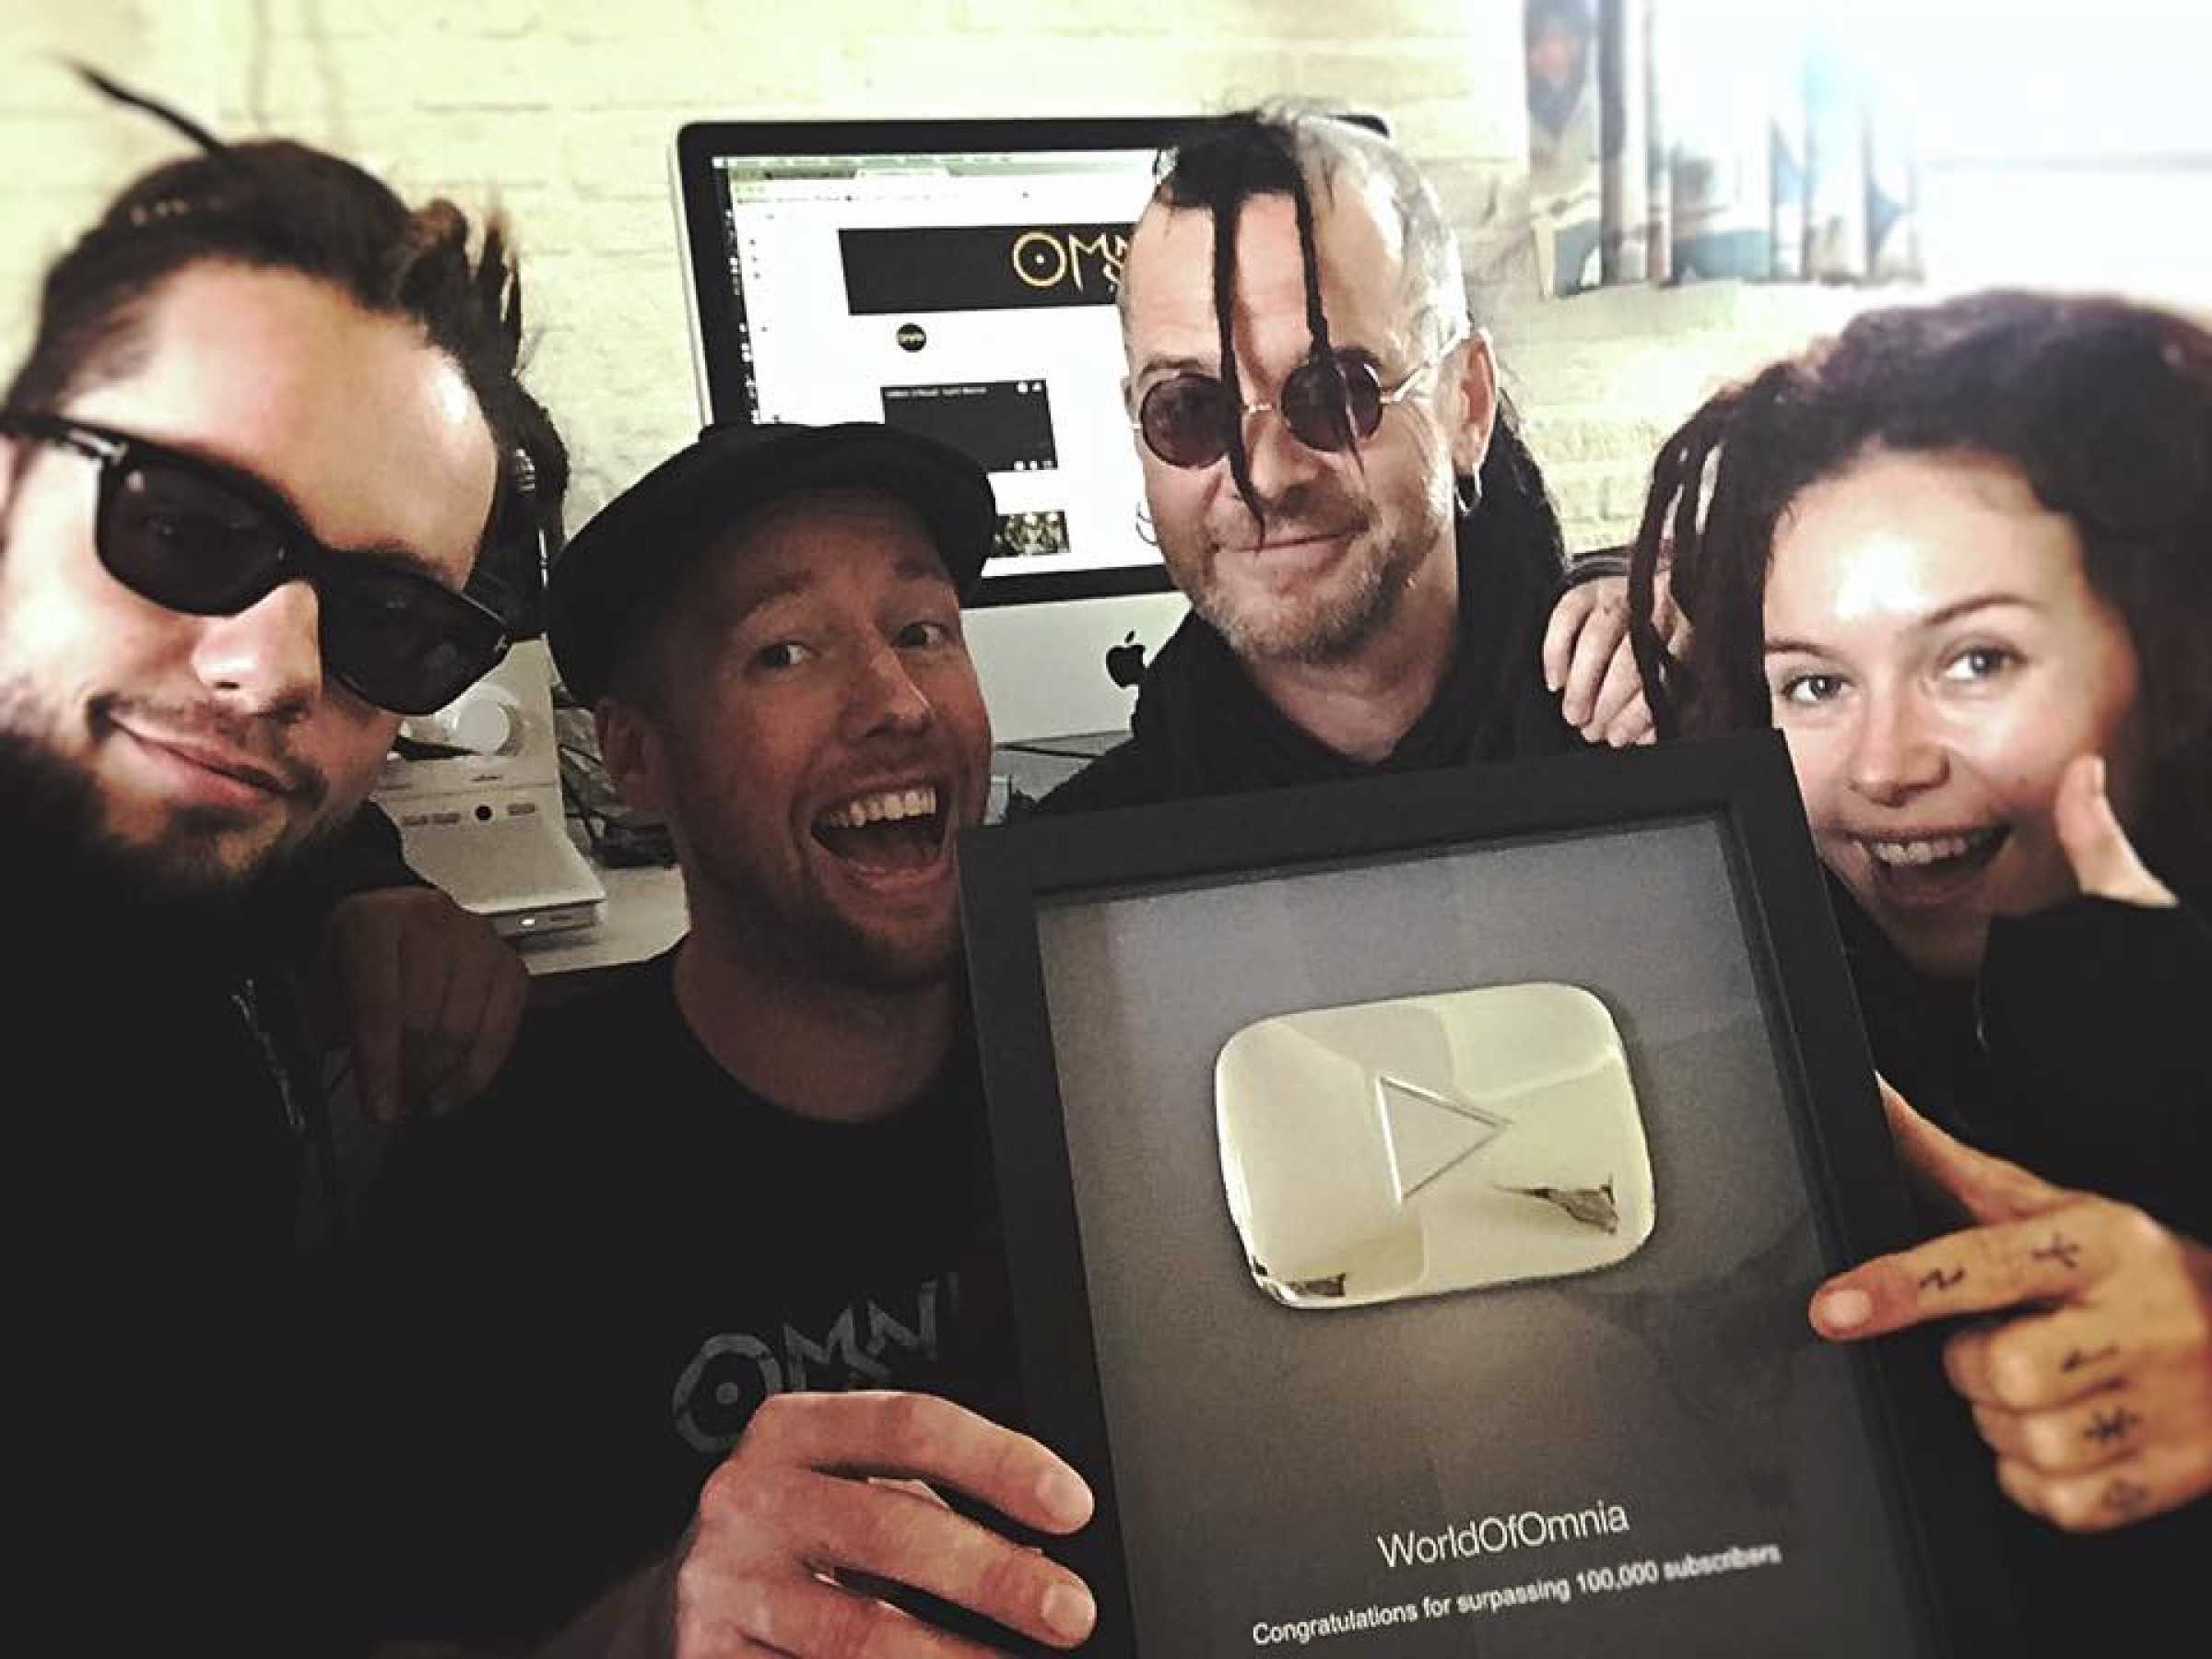 hey we just received a silver creator award for 100 000